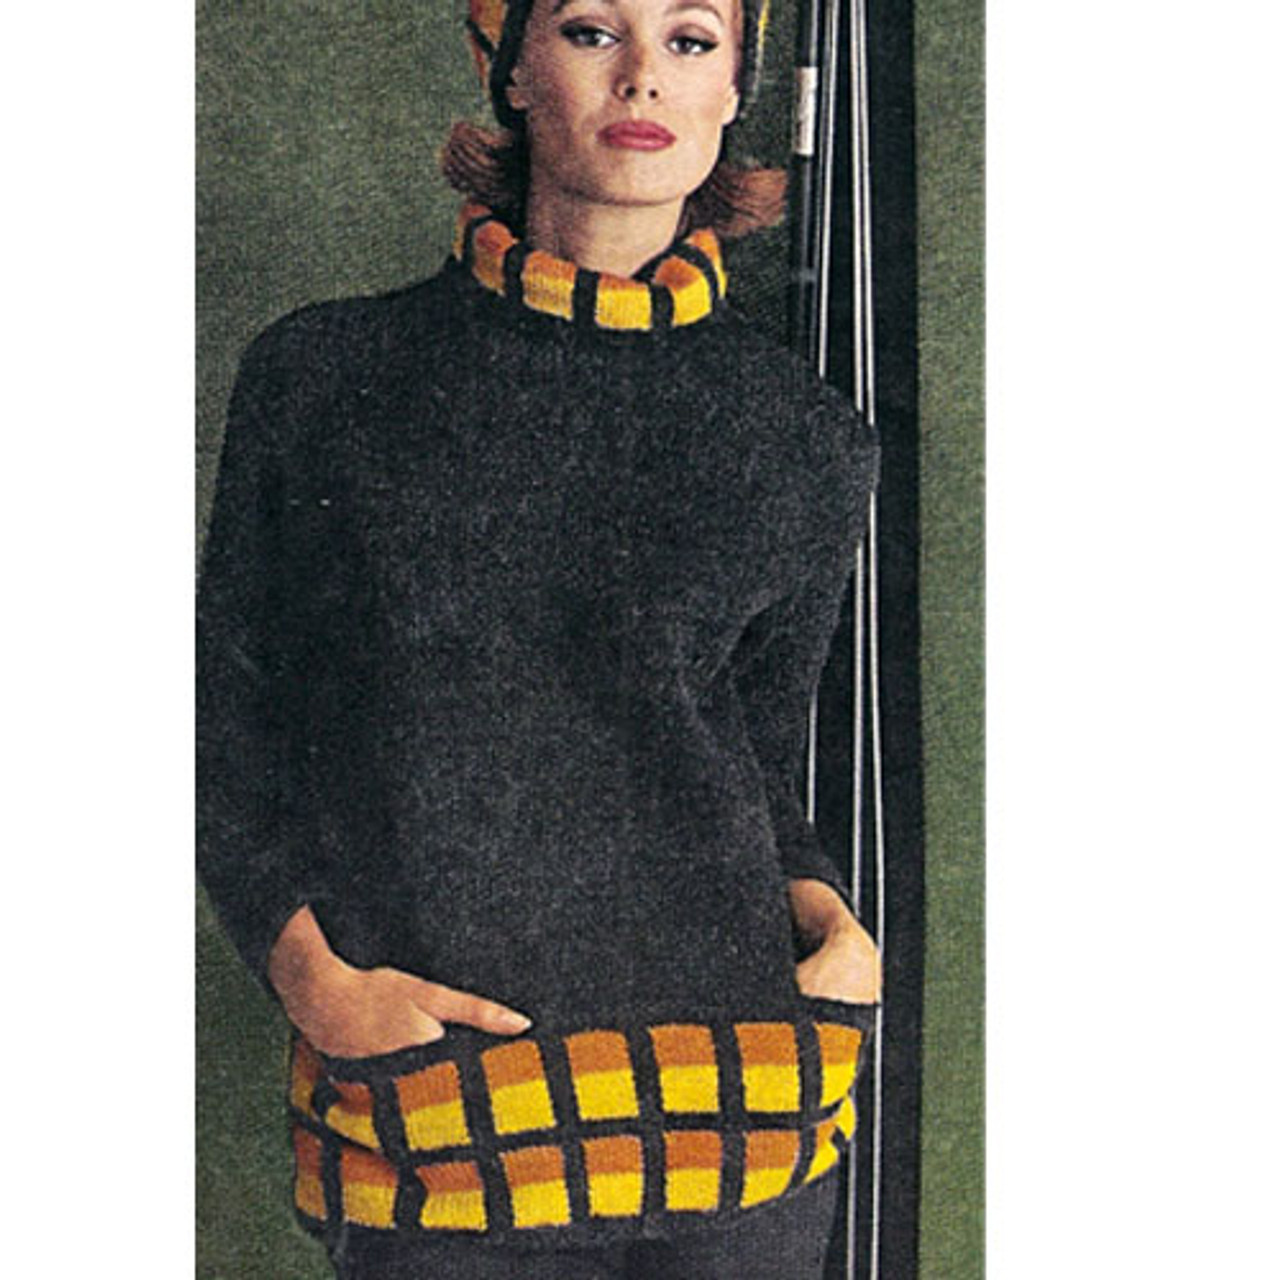 Vintage Knit Pullover with Front Pockets Pattern from Ungers